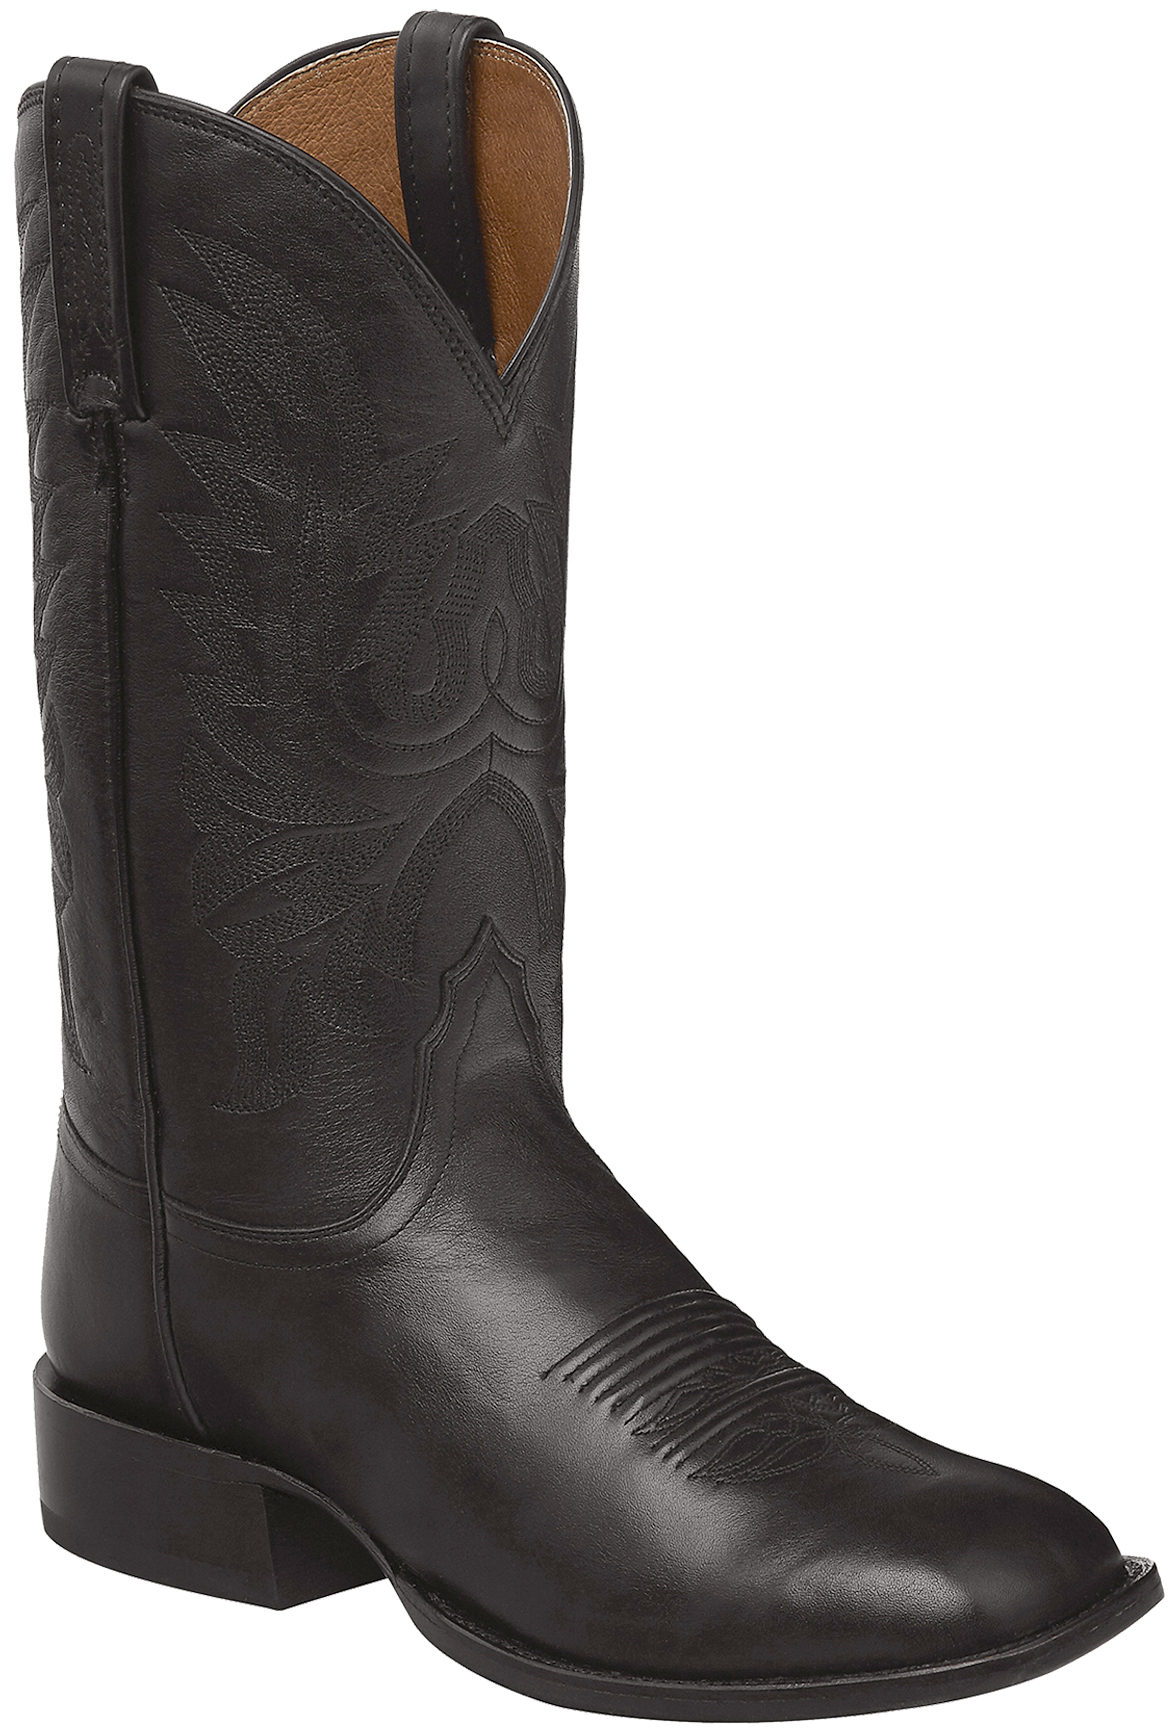 womens cross boots cowboy corral boot cognac comforter most toe img products studs comfortable square inlay ladies bone